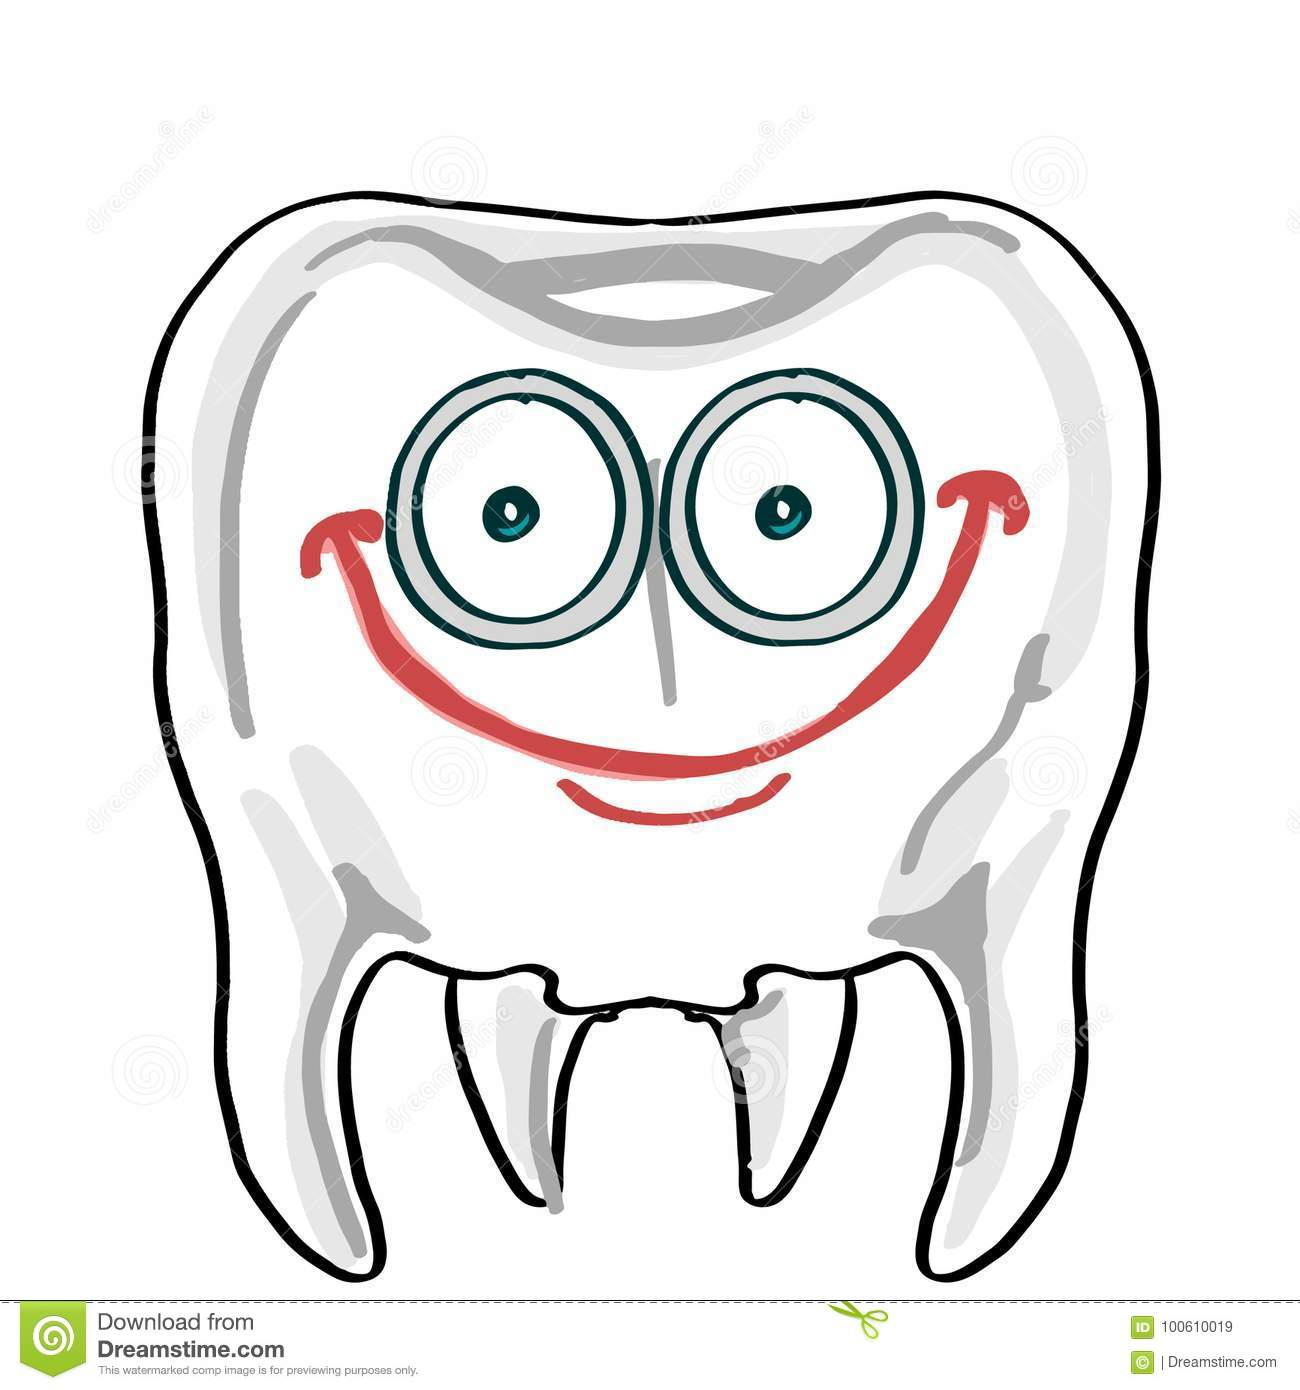 Cute Tooth Illustration Cartoon Drawing Coloring Stock Vector Illustration Of Dental Dentistry 100610019